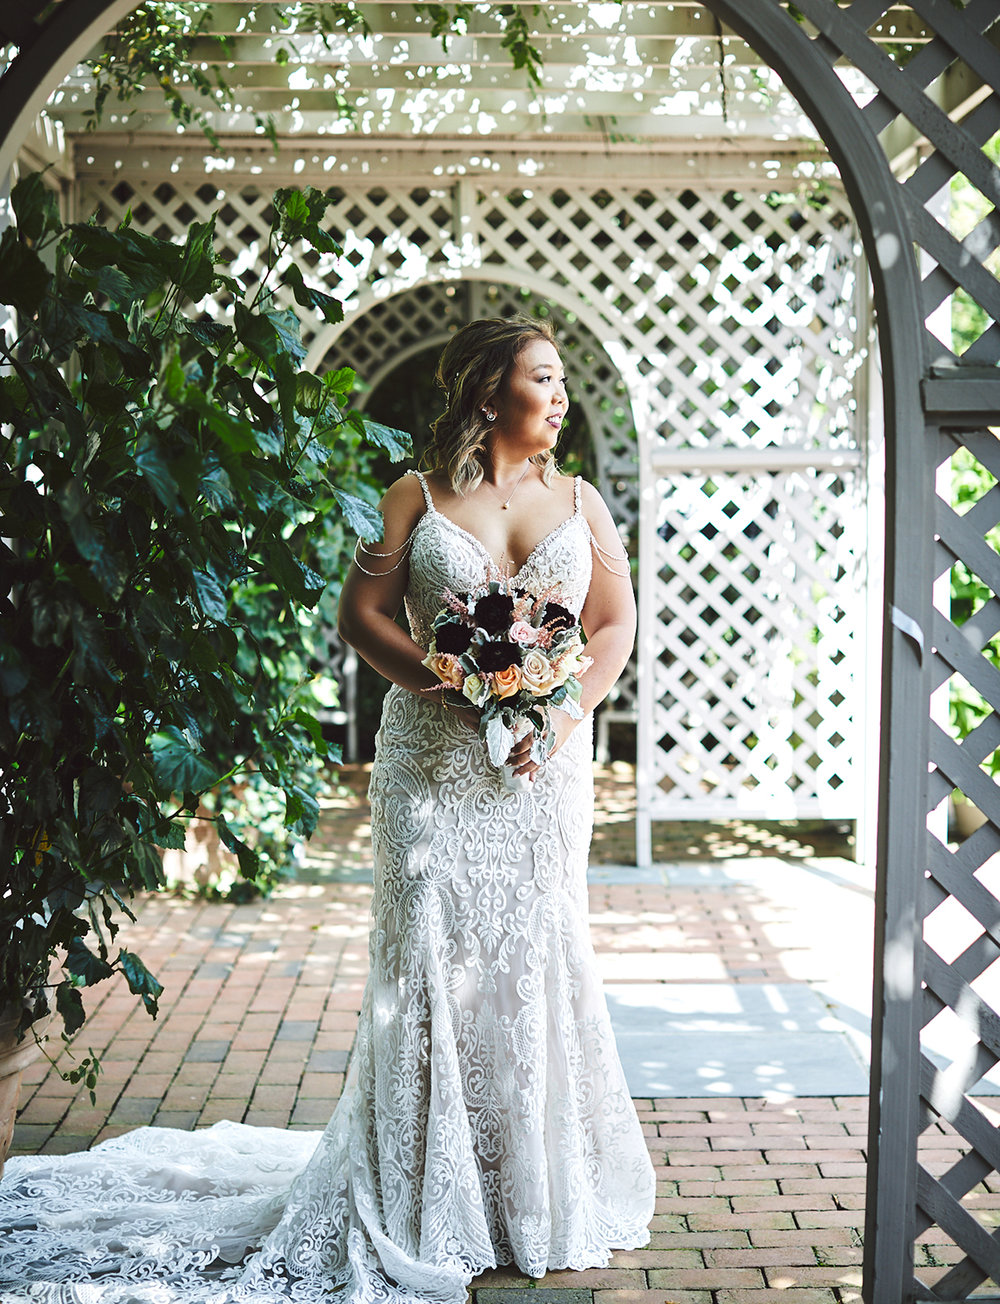 180922_CrestHollowCountryClubWeddingPhotography_LongIslandWeddingPhotographer_By_BriJohnsonWeddings_0065.jpg